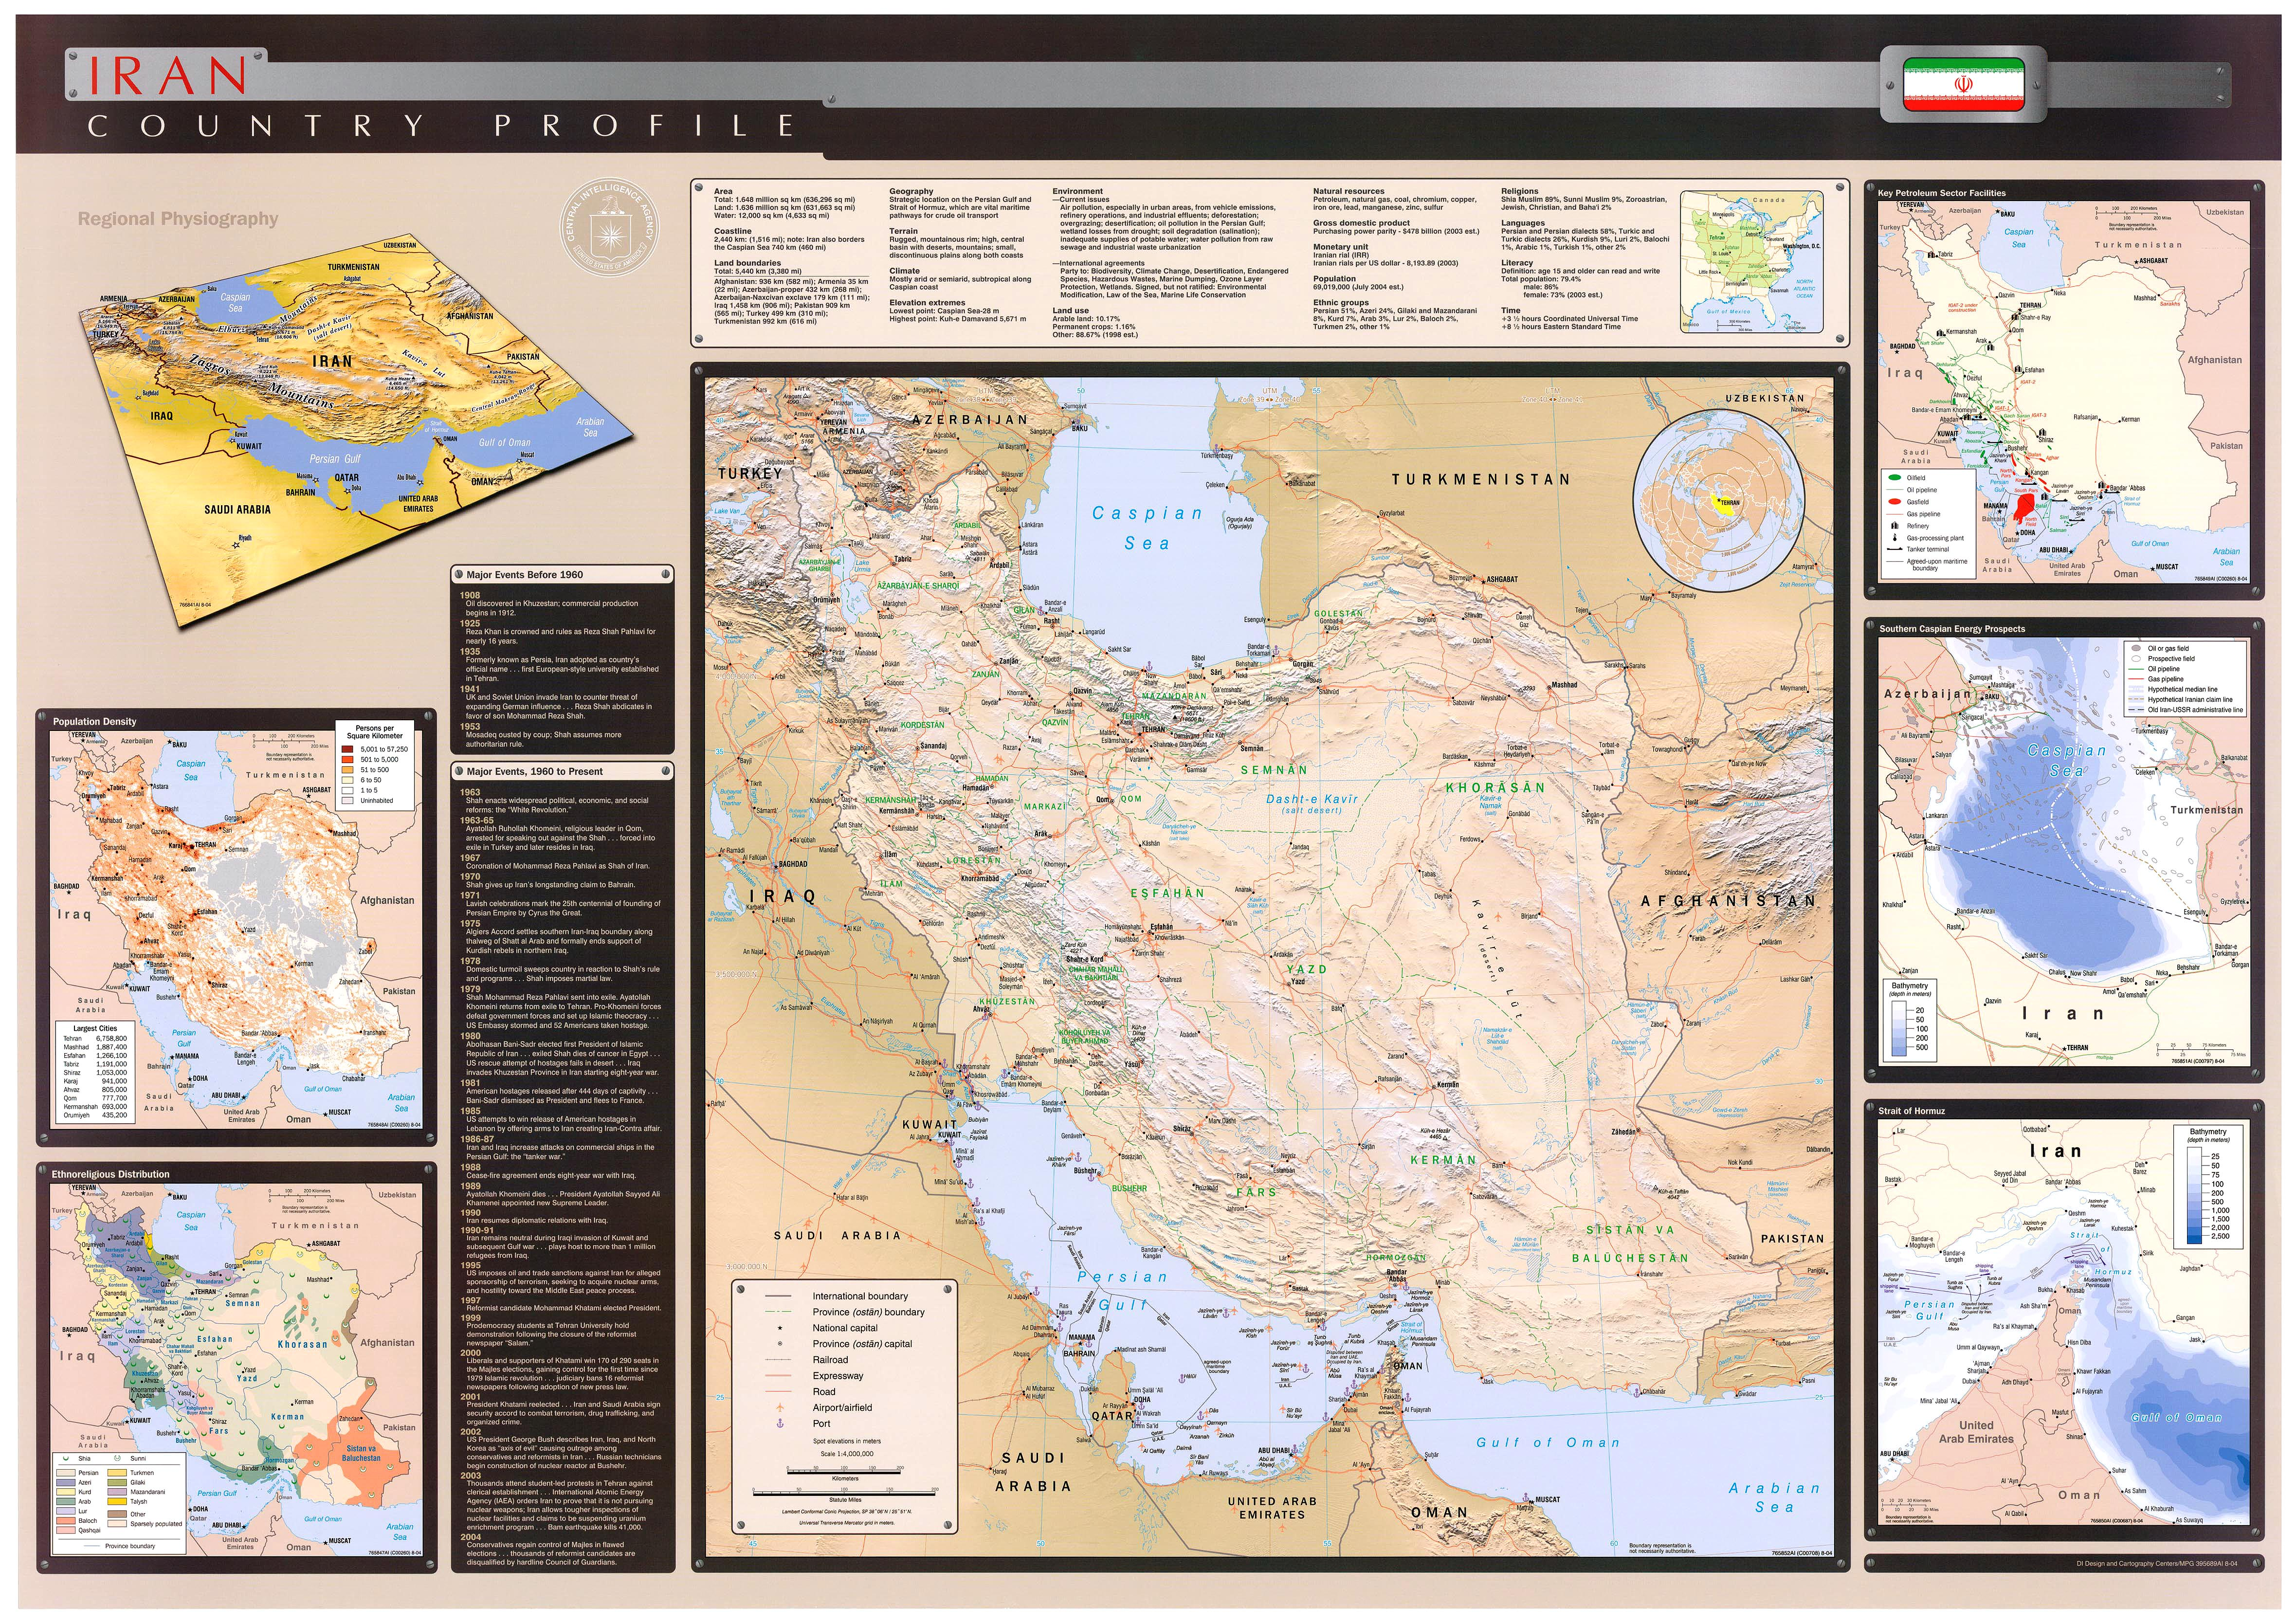 Iran islamic republic maps ecoi map with insets population density ethnoreligious distribution key petroleum sector facilities strait of hormuz gumiabroncs Gallery